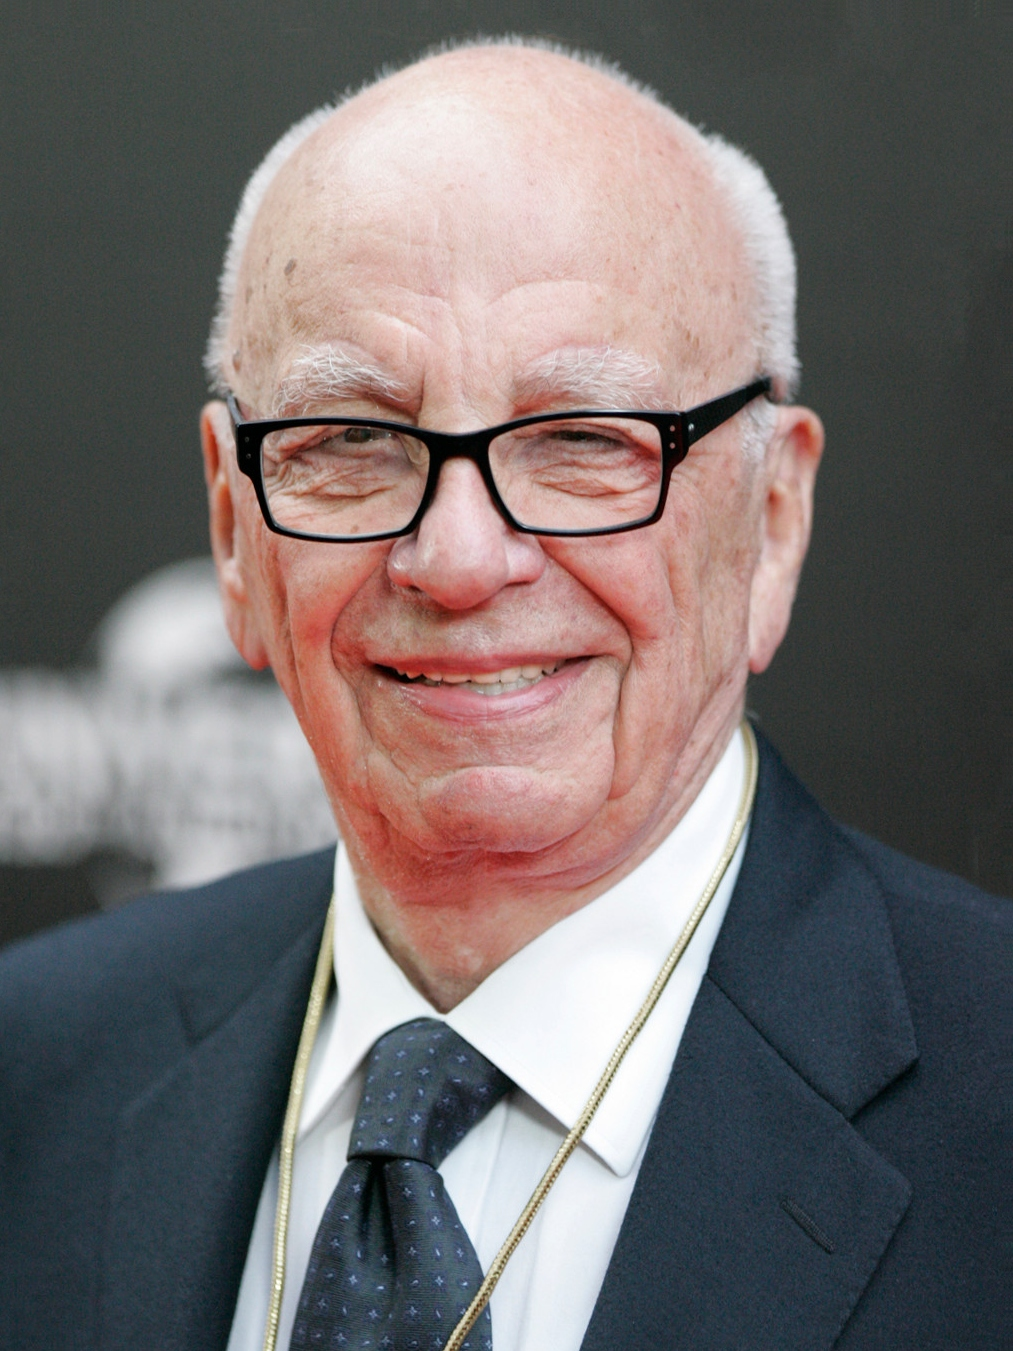 Rupert Murdoch photo courtesy of Wikipedia